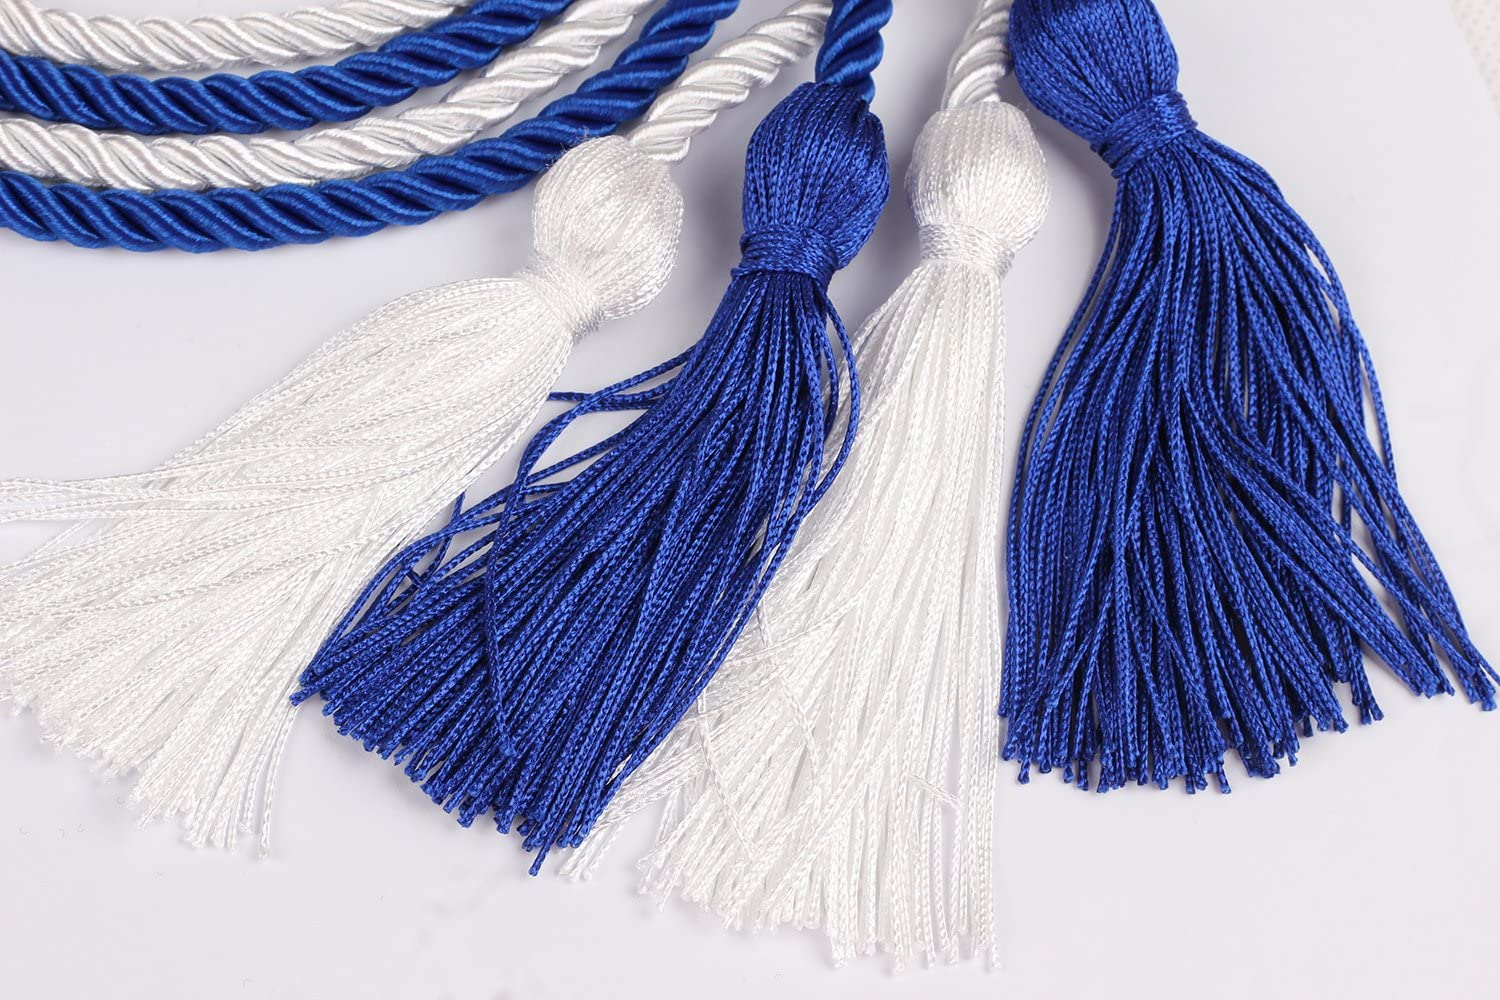 Black and White,68 Long Double Graduation Honor Cords